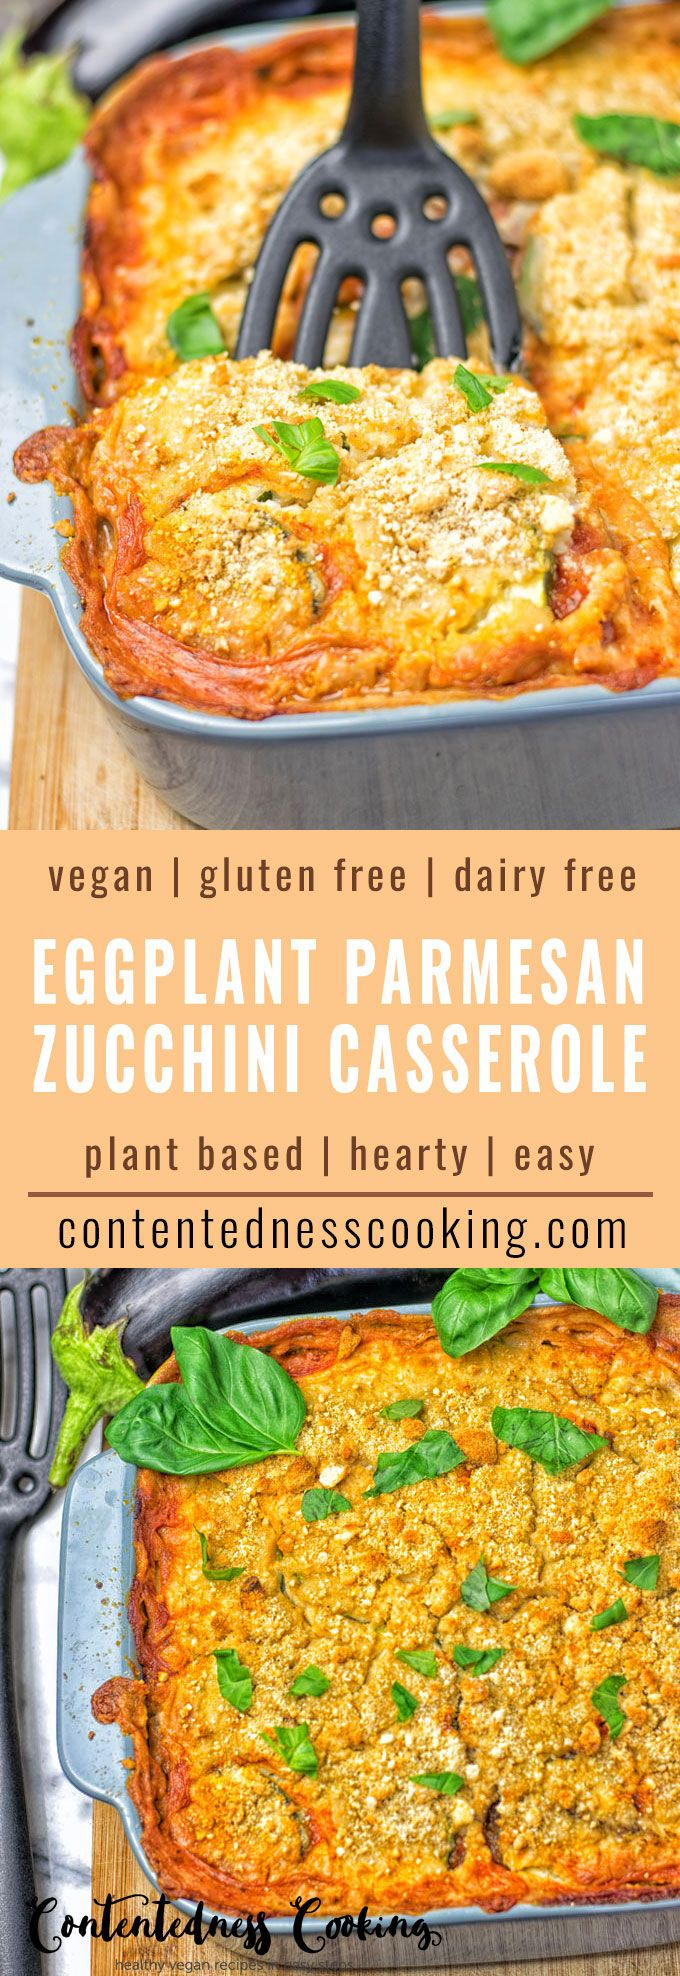 Eggplant Parmesan Zucchini Casserole, vegan, glutenfree full of incredible flavors! Eggplant and Zucchini Slices are layered in homemade dairy free white sauce and fresh tomato sauce. Topped with vegan parmesan baked to perfection. This makes an amazing plant based appetizer, dinner, or lunch comfort food. Plus super easy to make.